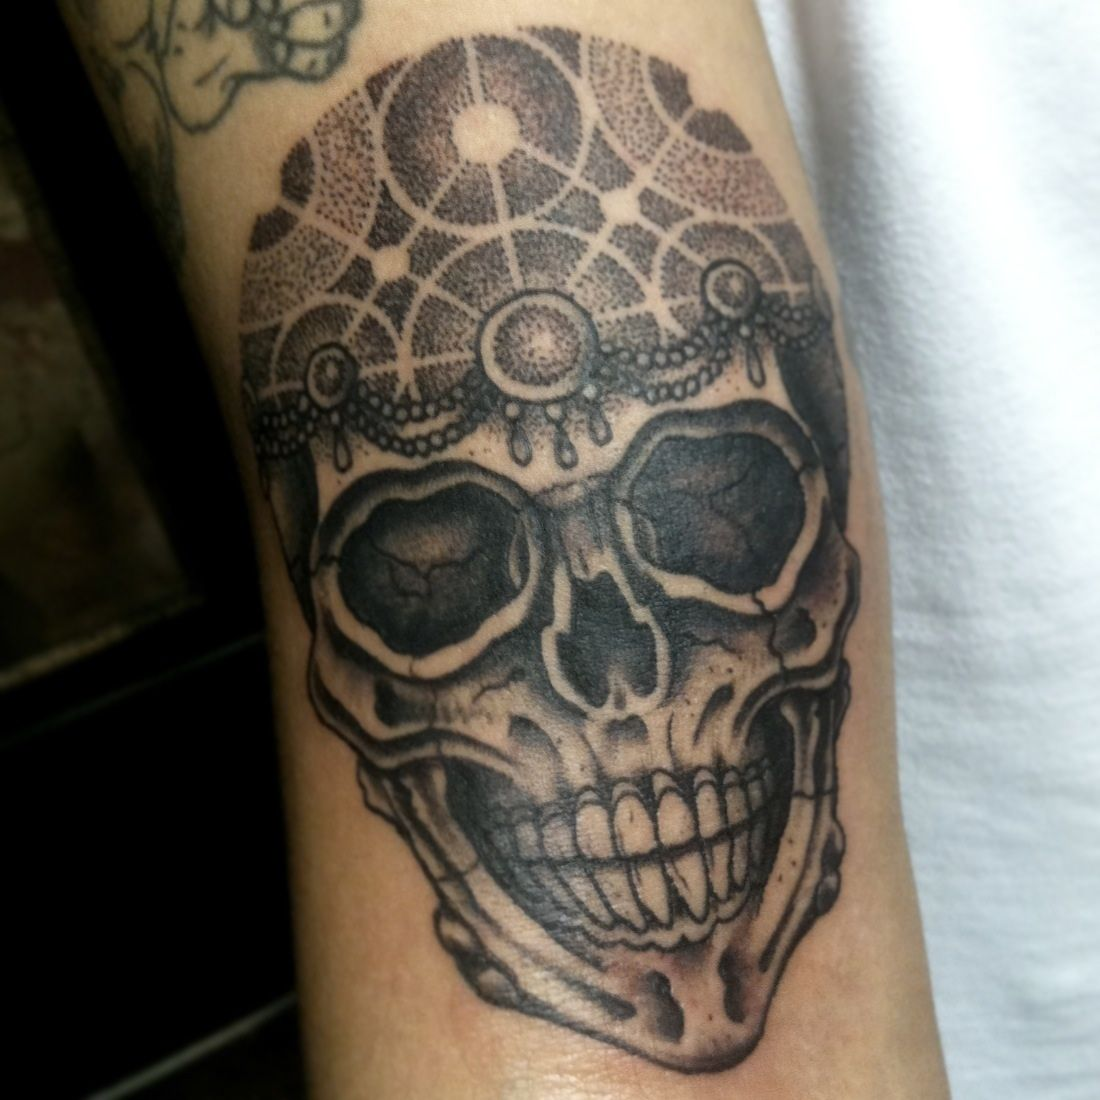 Arm Tattoos For Men Awesome Lifestyles Tattoos for guys